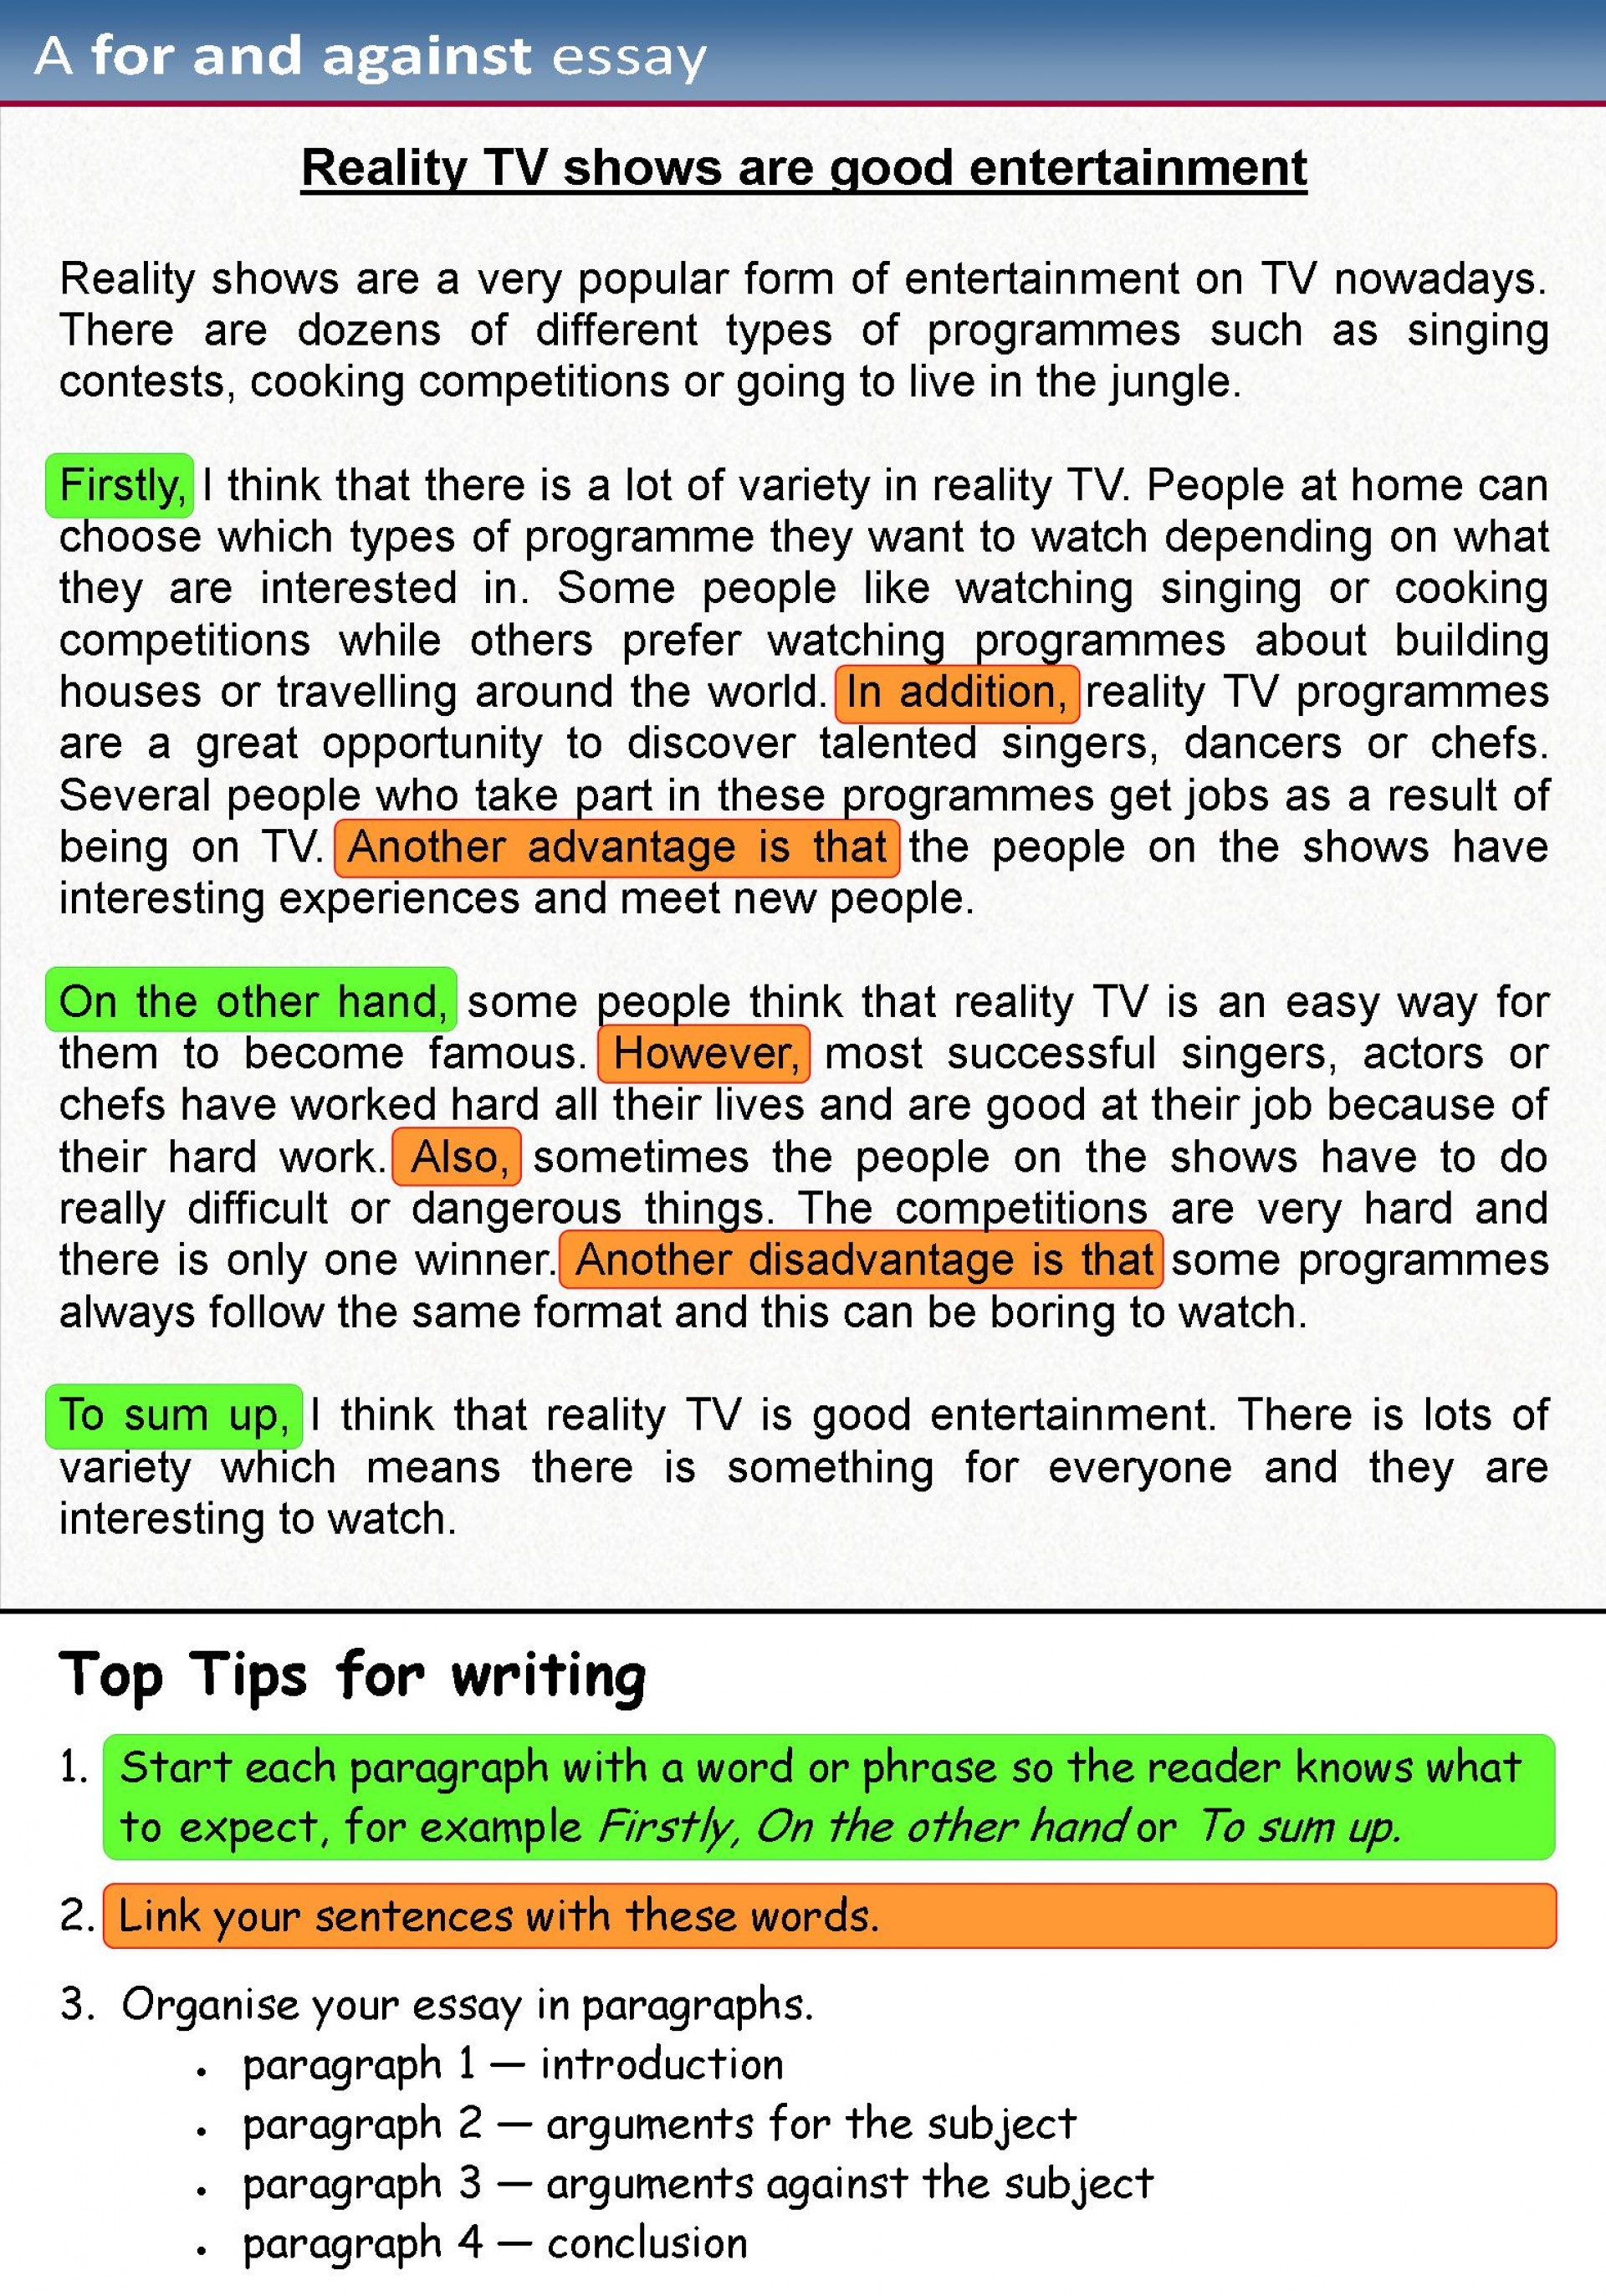 027 How Many Sentences Are In Essay For Against 1 Best A 5 Paragraph Short 1920